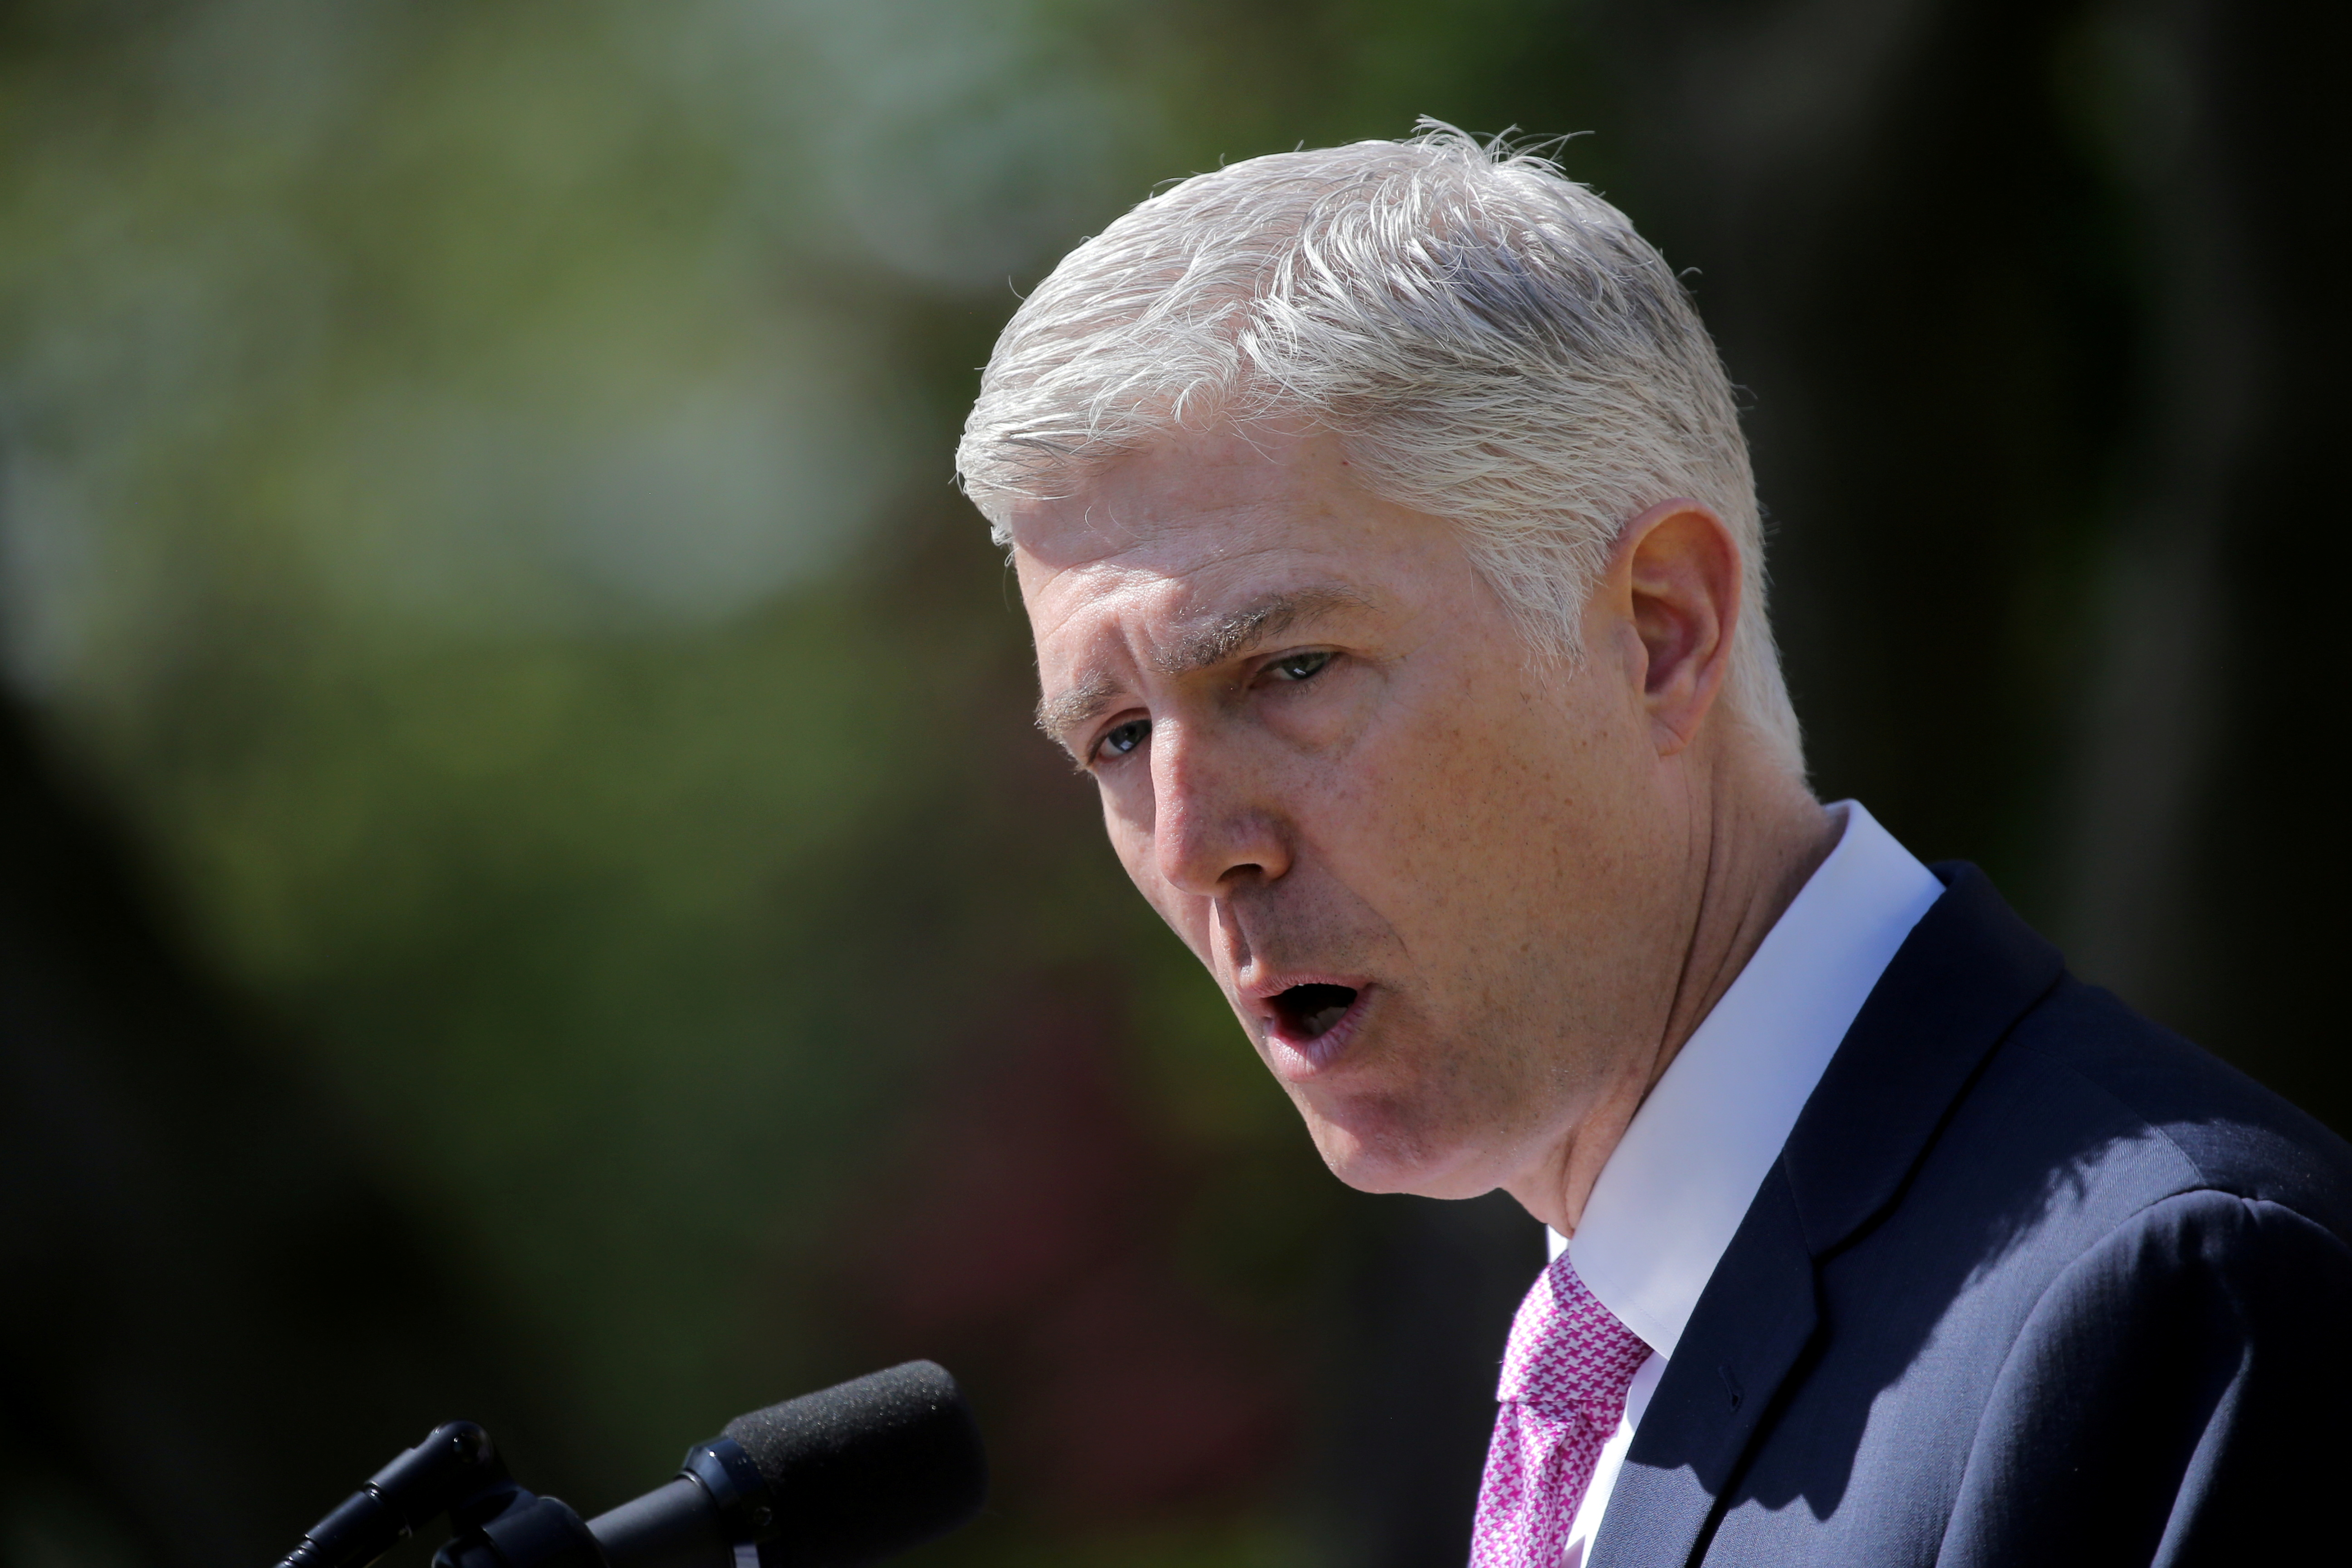 Judge Neil Gorsuch speaks after his swearing as an associate justice of the Supreme Court in the Rose Garden of the White House in Washington, U.S., April 10, 2017. REUTERS/Carlos Barria/File Photo